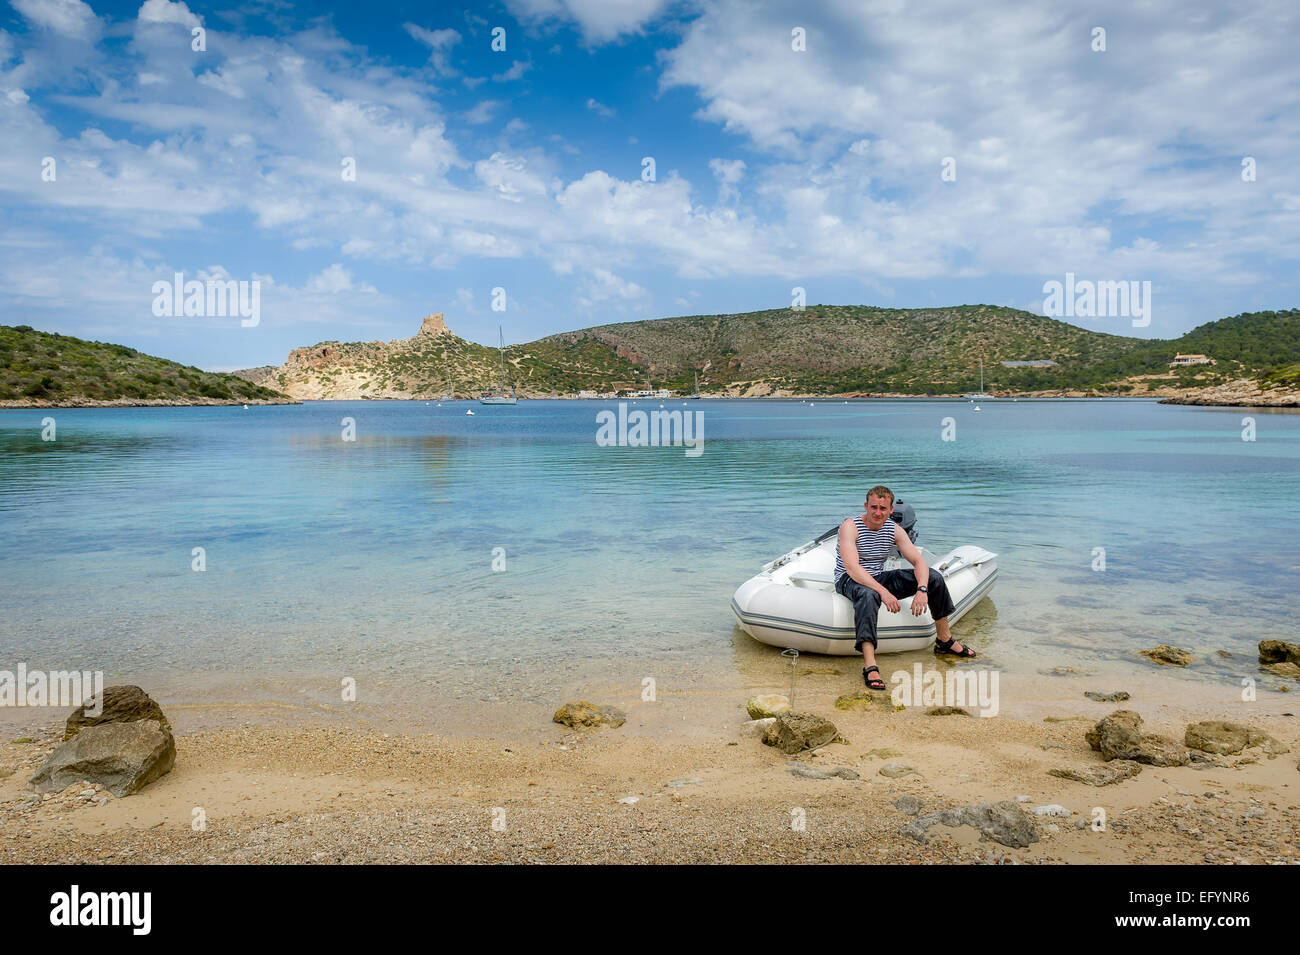 Sailor in dinghy - Stock Image